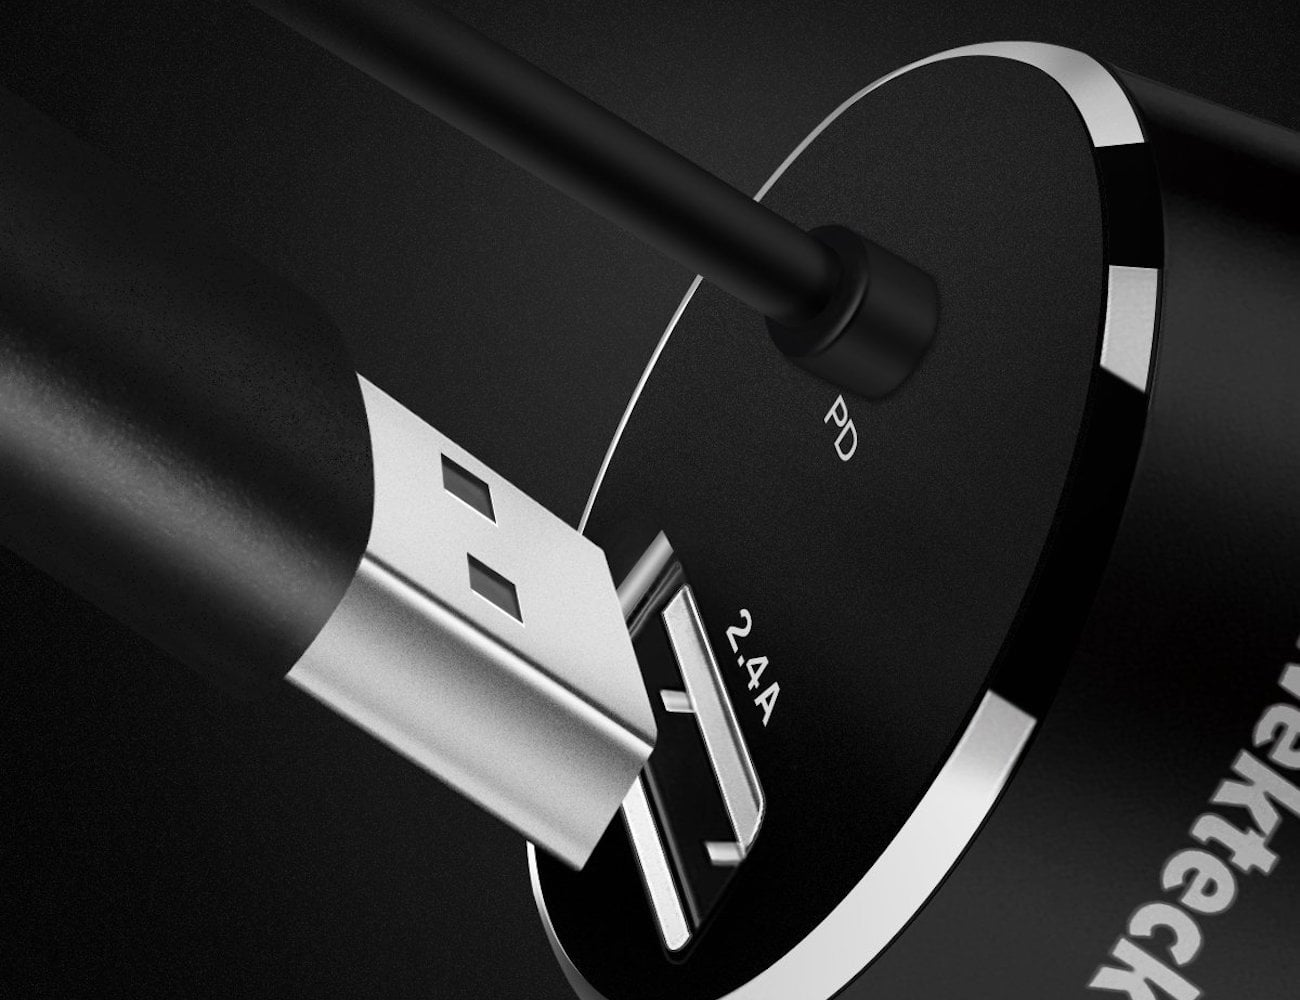 Nekteck USB-IF Certified Car Charger